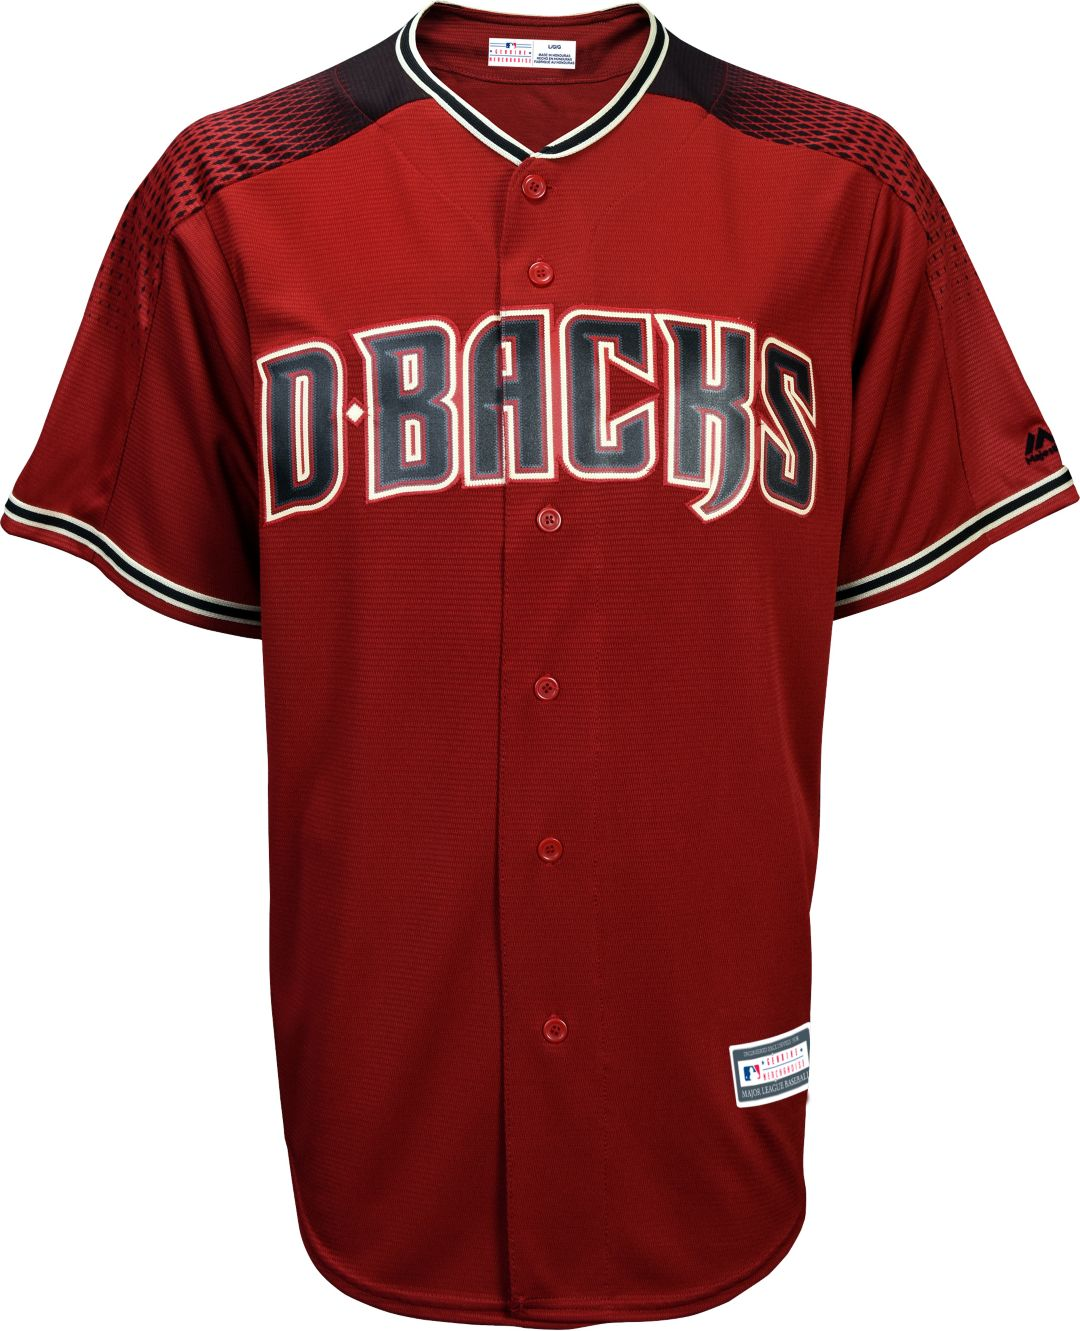 pretty nice 5fb69 e06d0 Youth Replica Arizona Diamondbacks David Peralta #6 Alternate Red Jersey